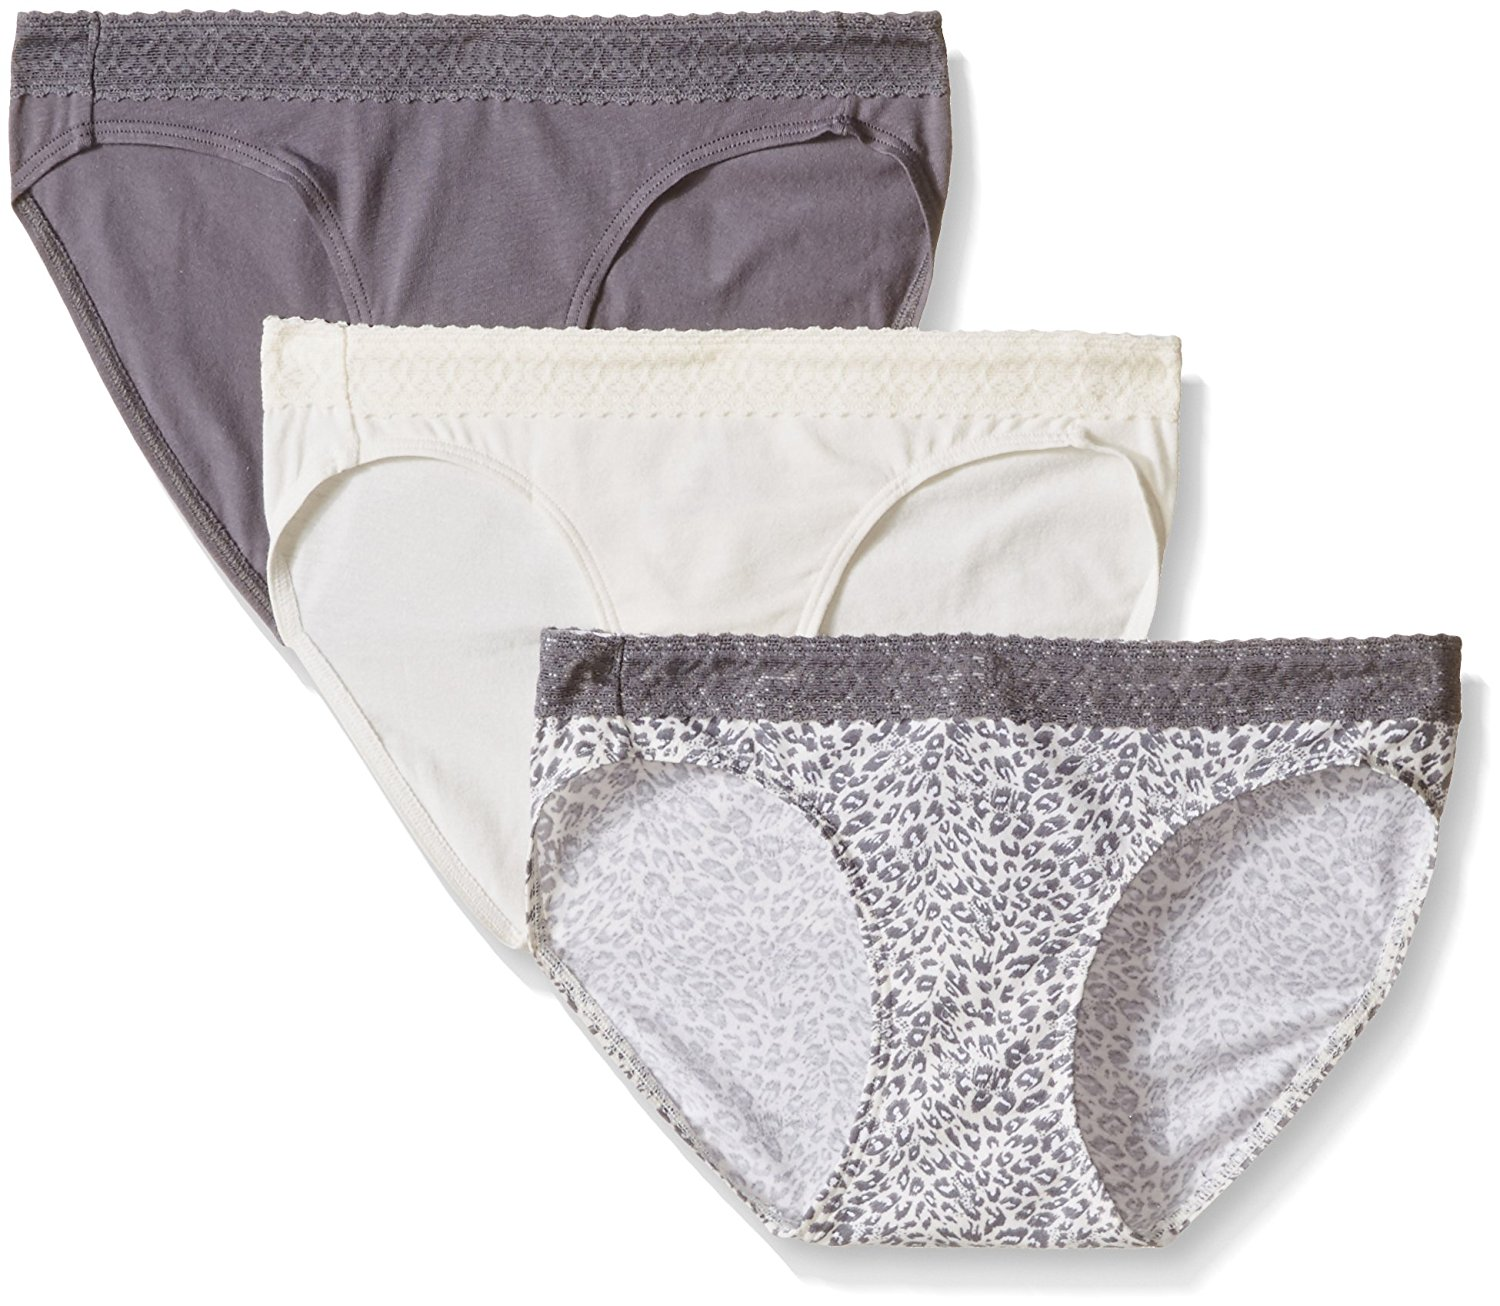 3057caac727 Get Quotations · Hanes Ultimate Women's 3-Pack Cotton Stretch with Lace Bikini  Panties